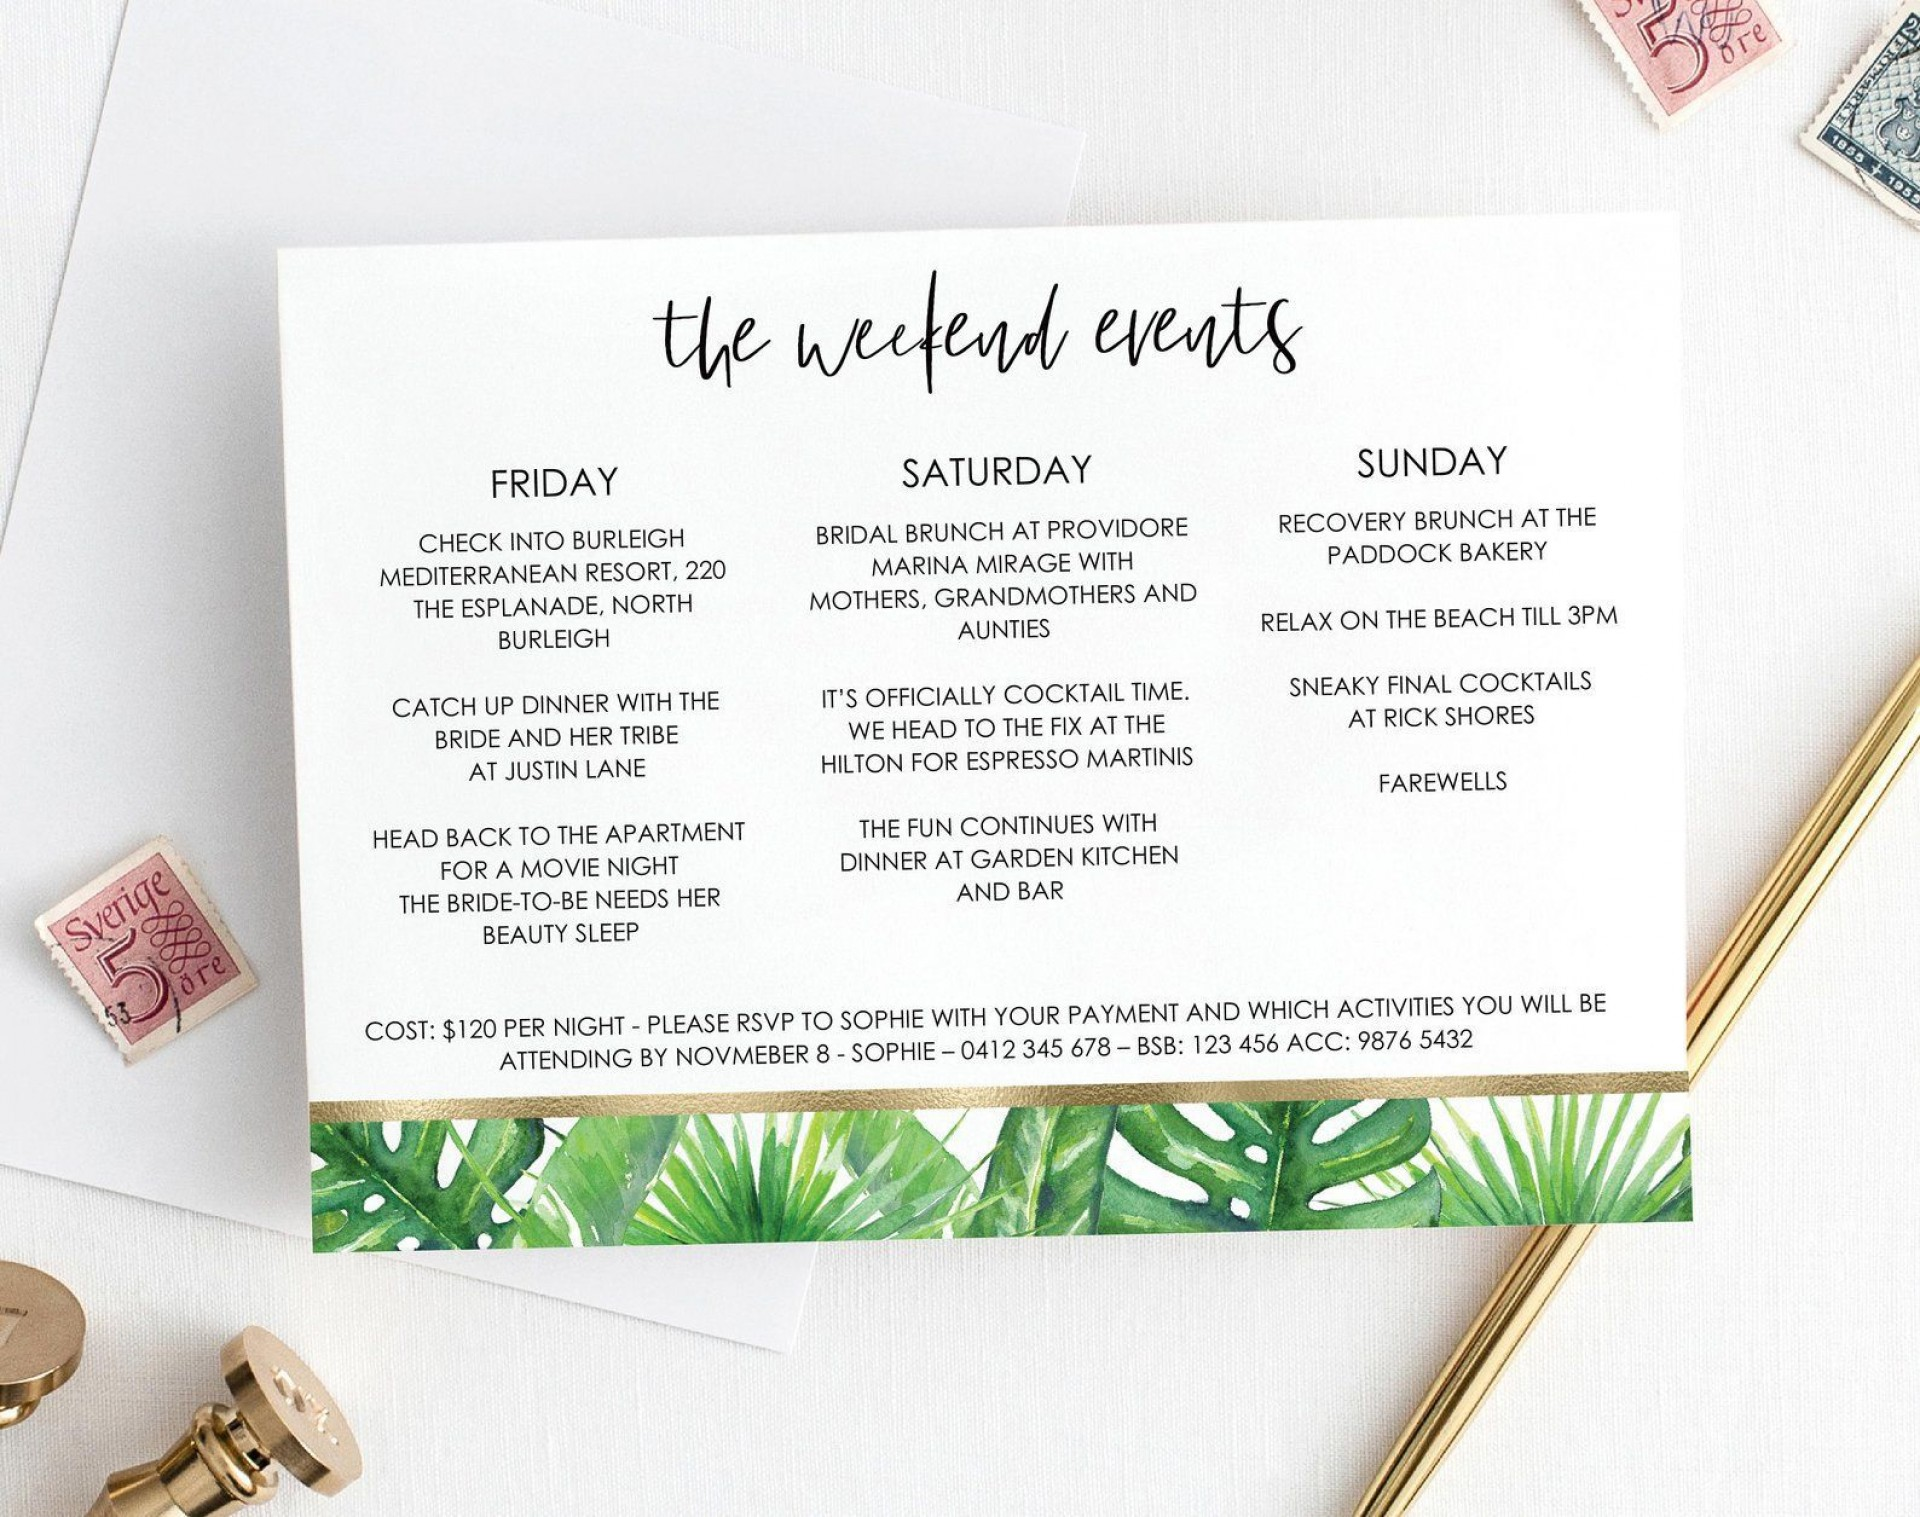 005 Sensational Bachelorette Party Itinerary Template Free Sample  Download1920